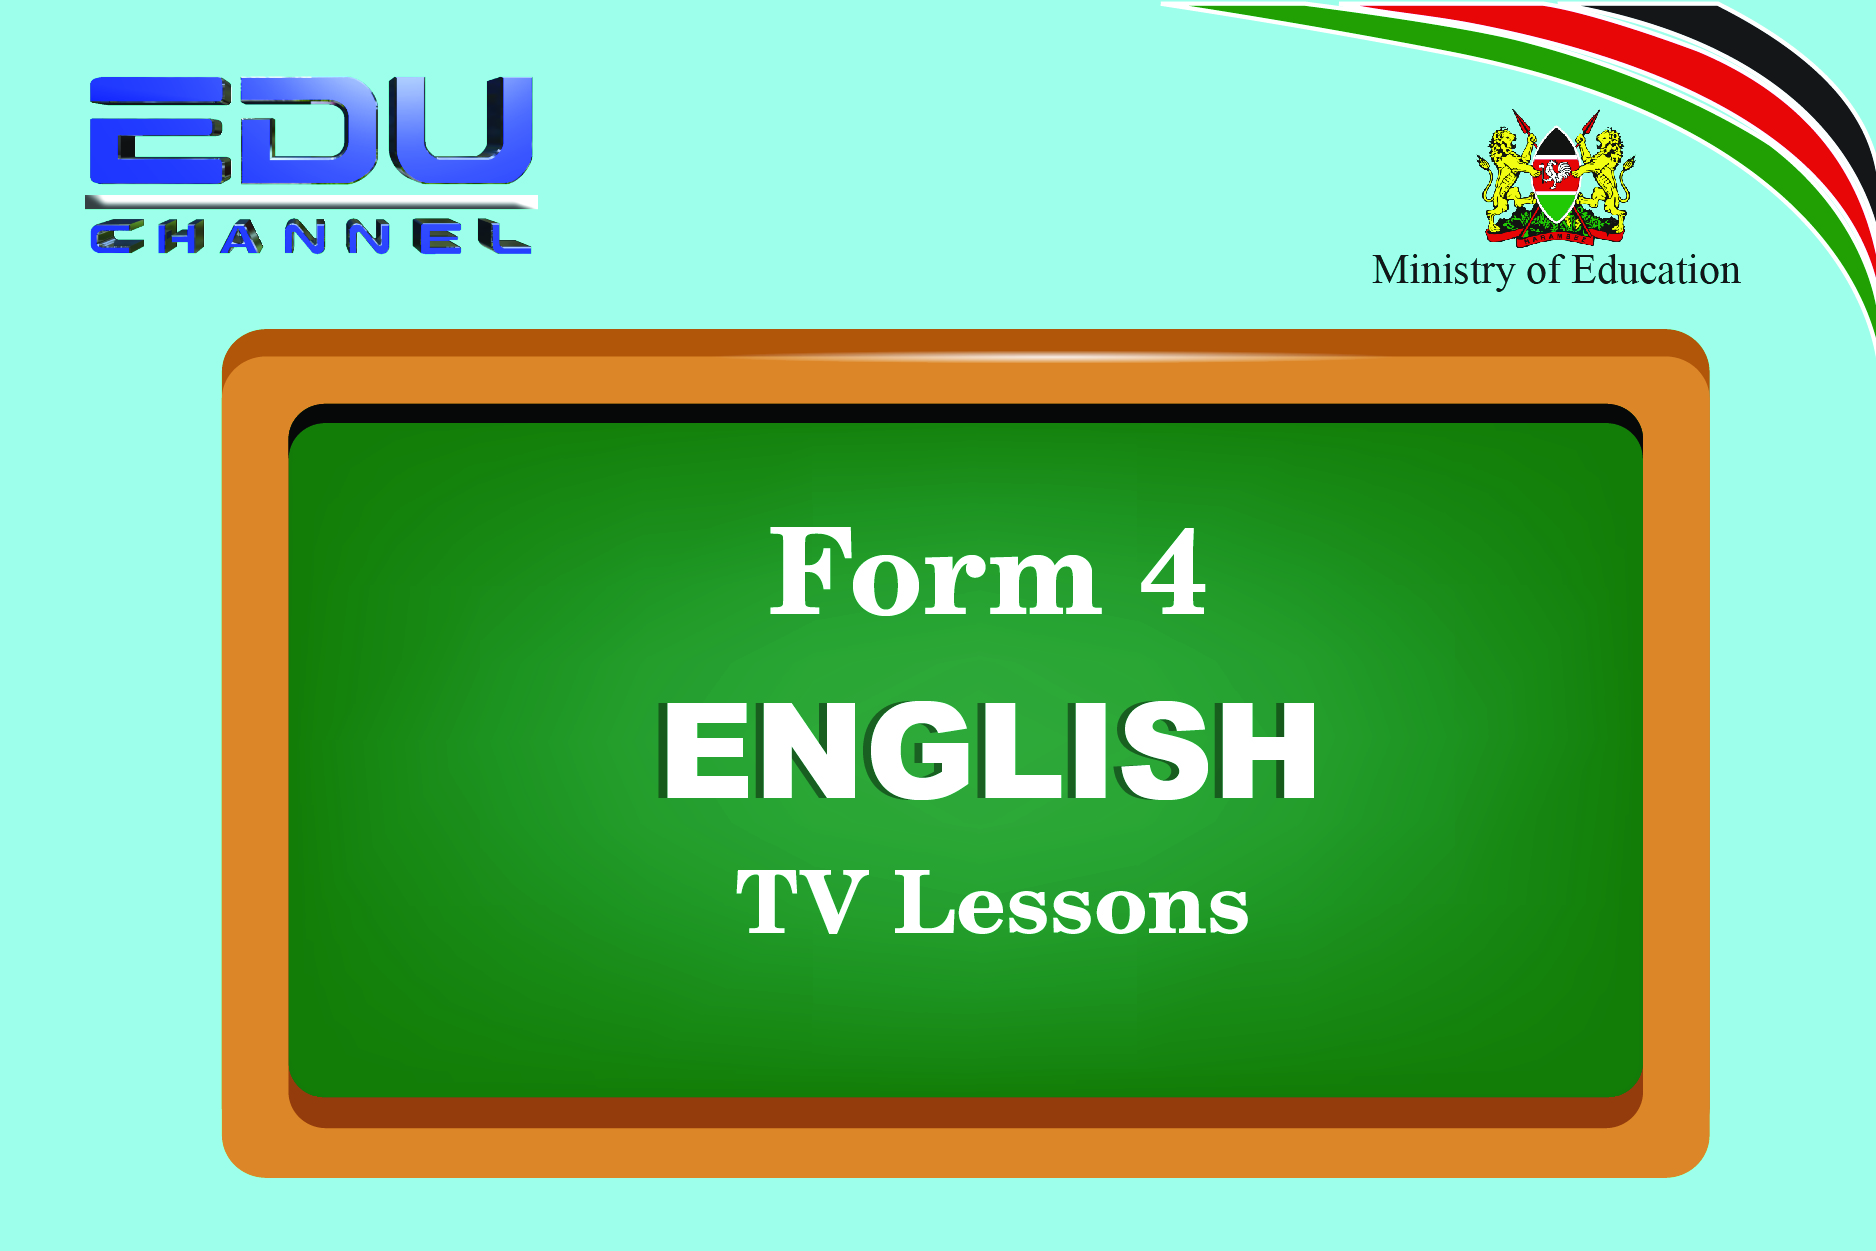 Form 4 English  Lesson 11 : Grammar - The Gerund and the participle phrase